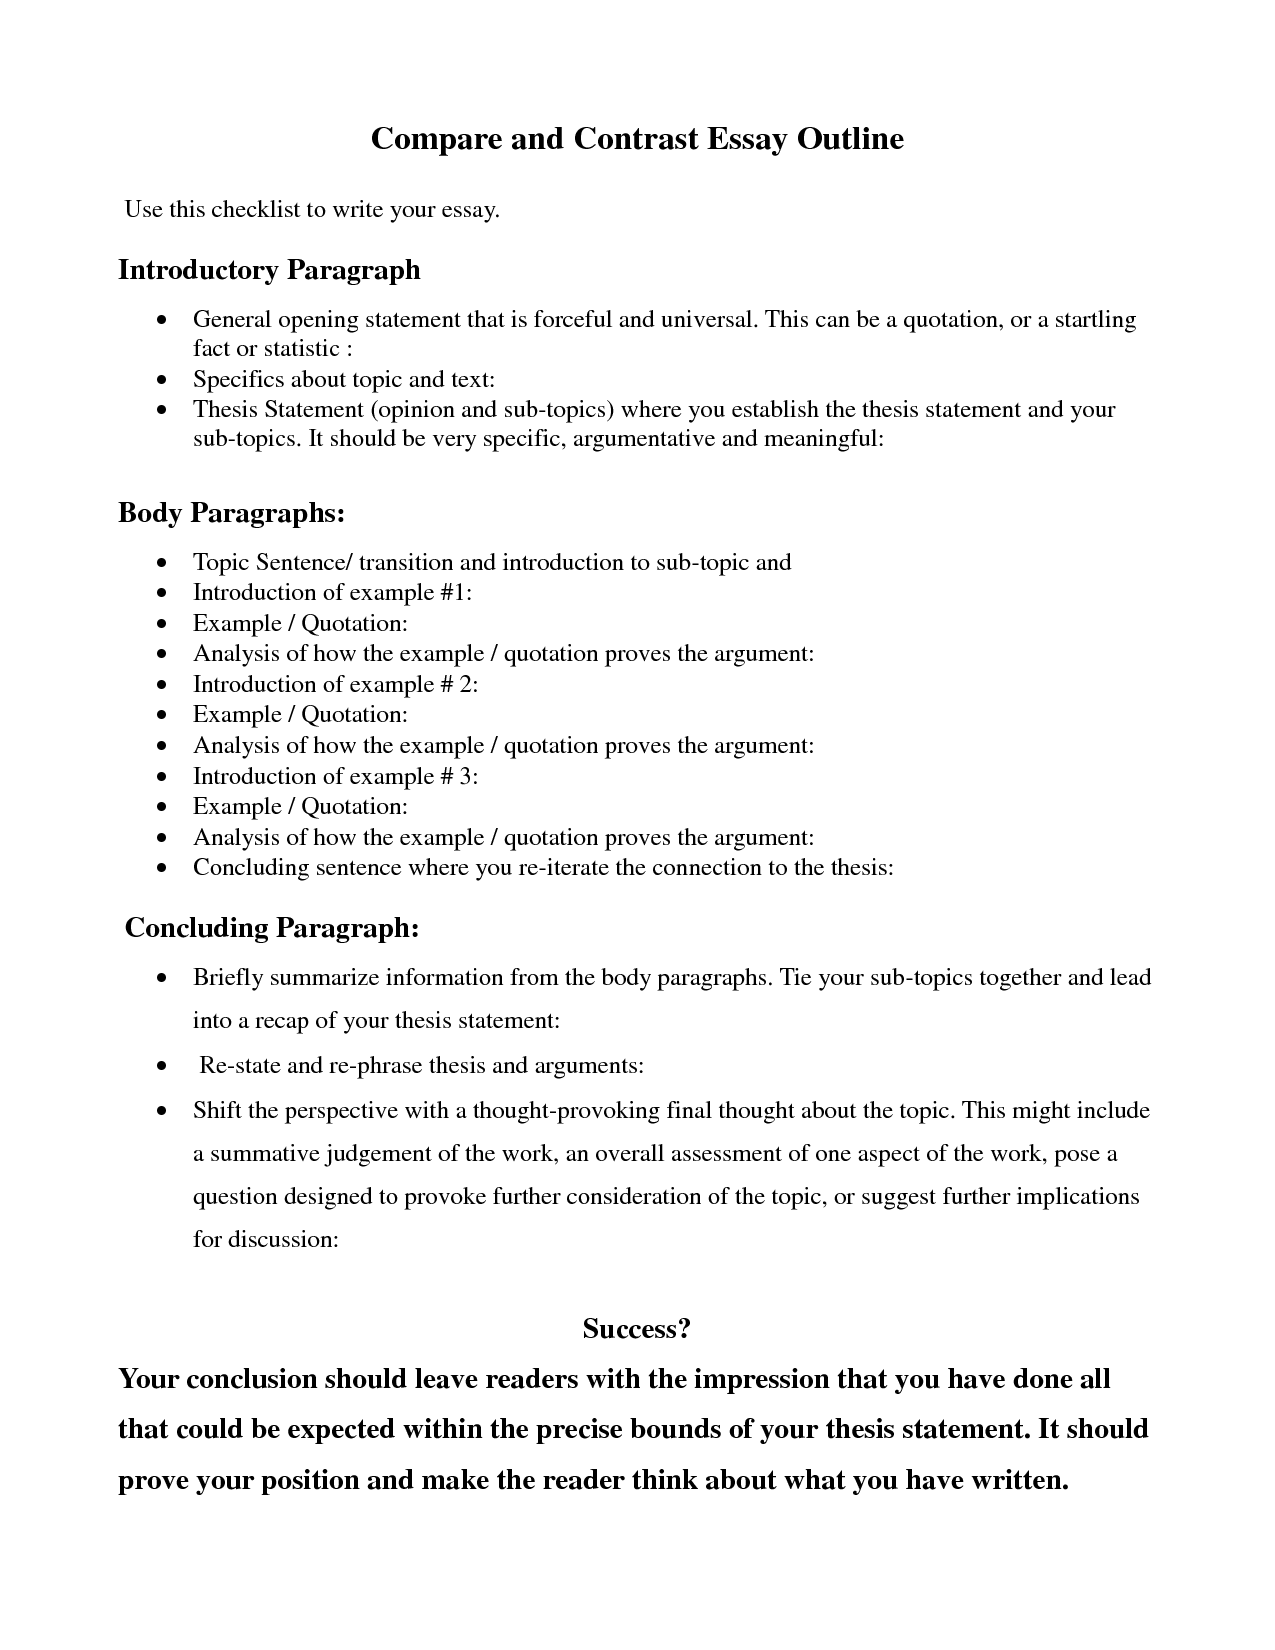 Comparecontrast Essay Outline  Google Search  Education  Thesis  Comparecontrast Essay Outline  Google Search First Day Of High School Essay also Hiring Ghostwriters  High School Admission Essay